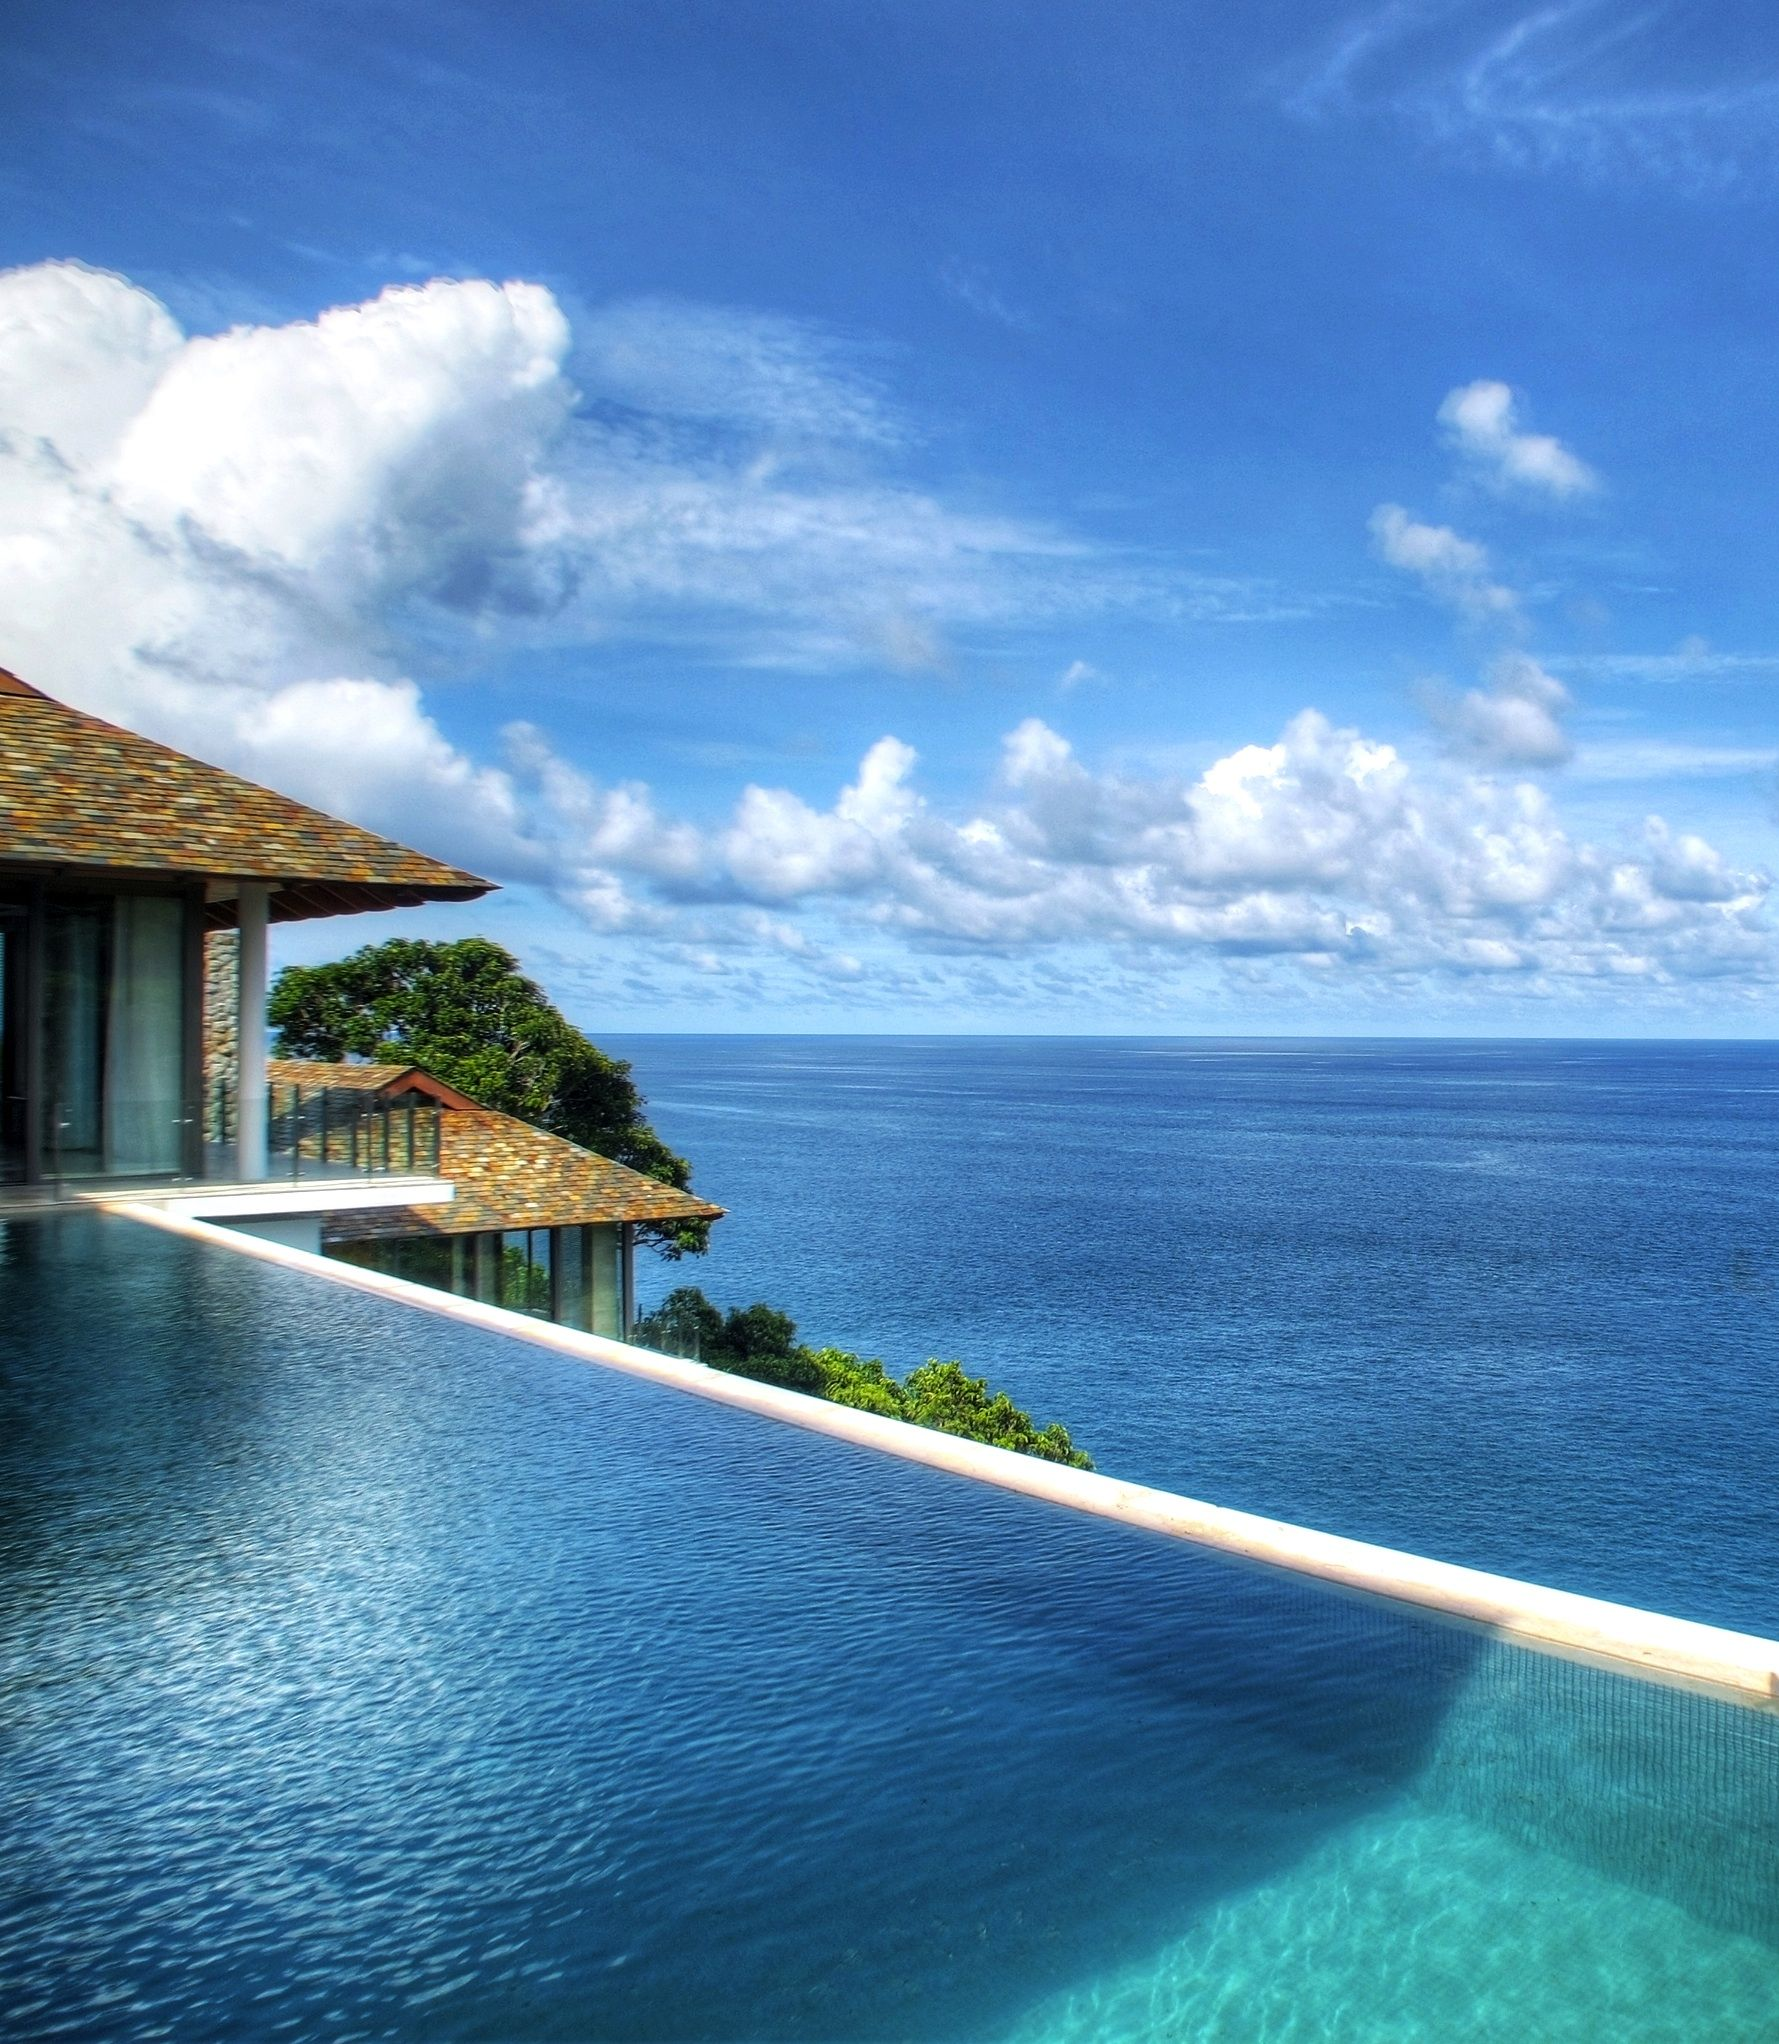 Infinity Pool Over Looking The Ocean Ideas For The House